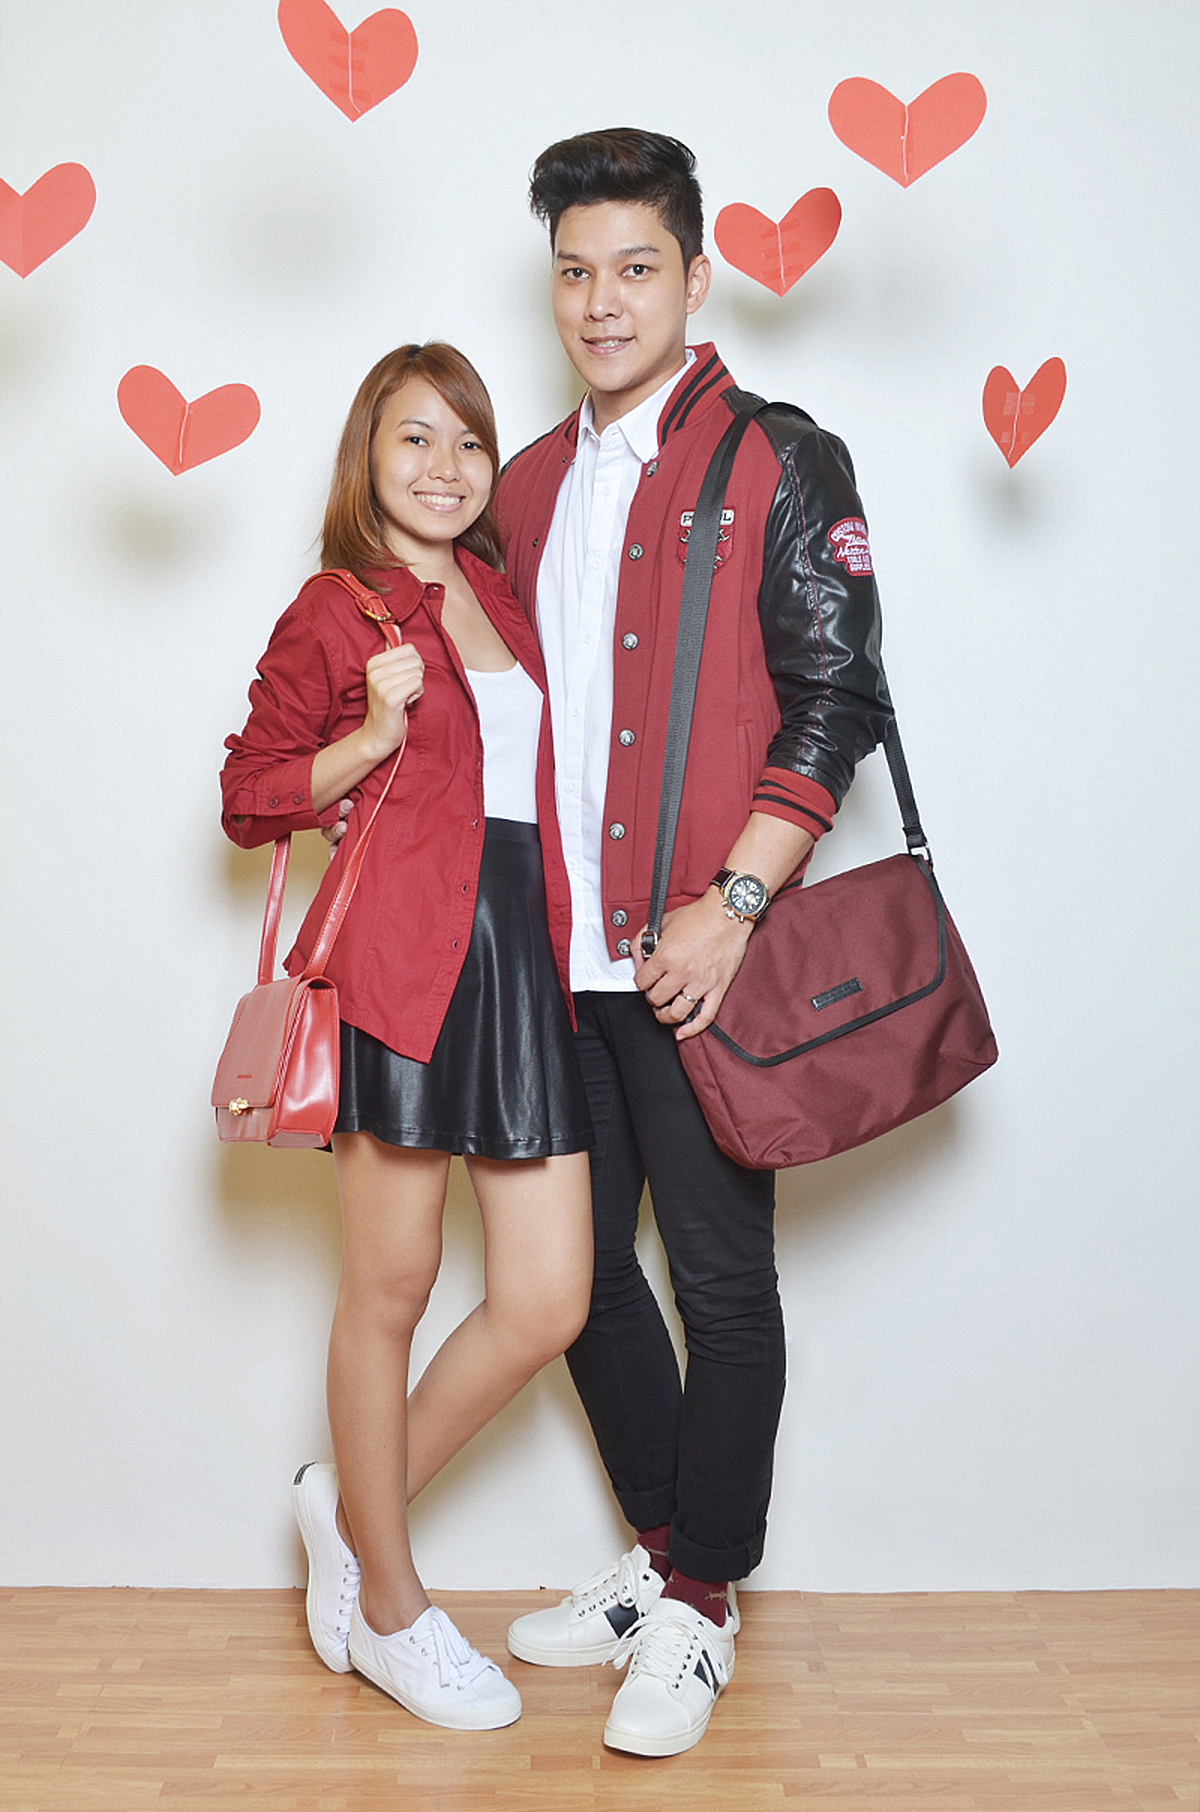 Seph Cham and Trice Nagusara